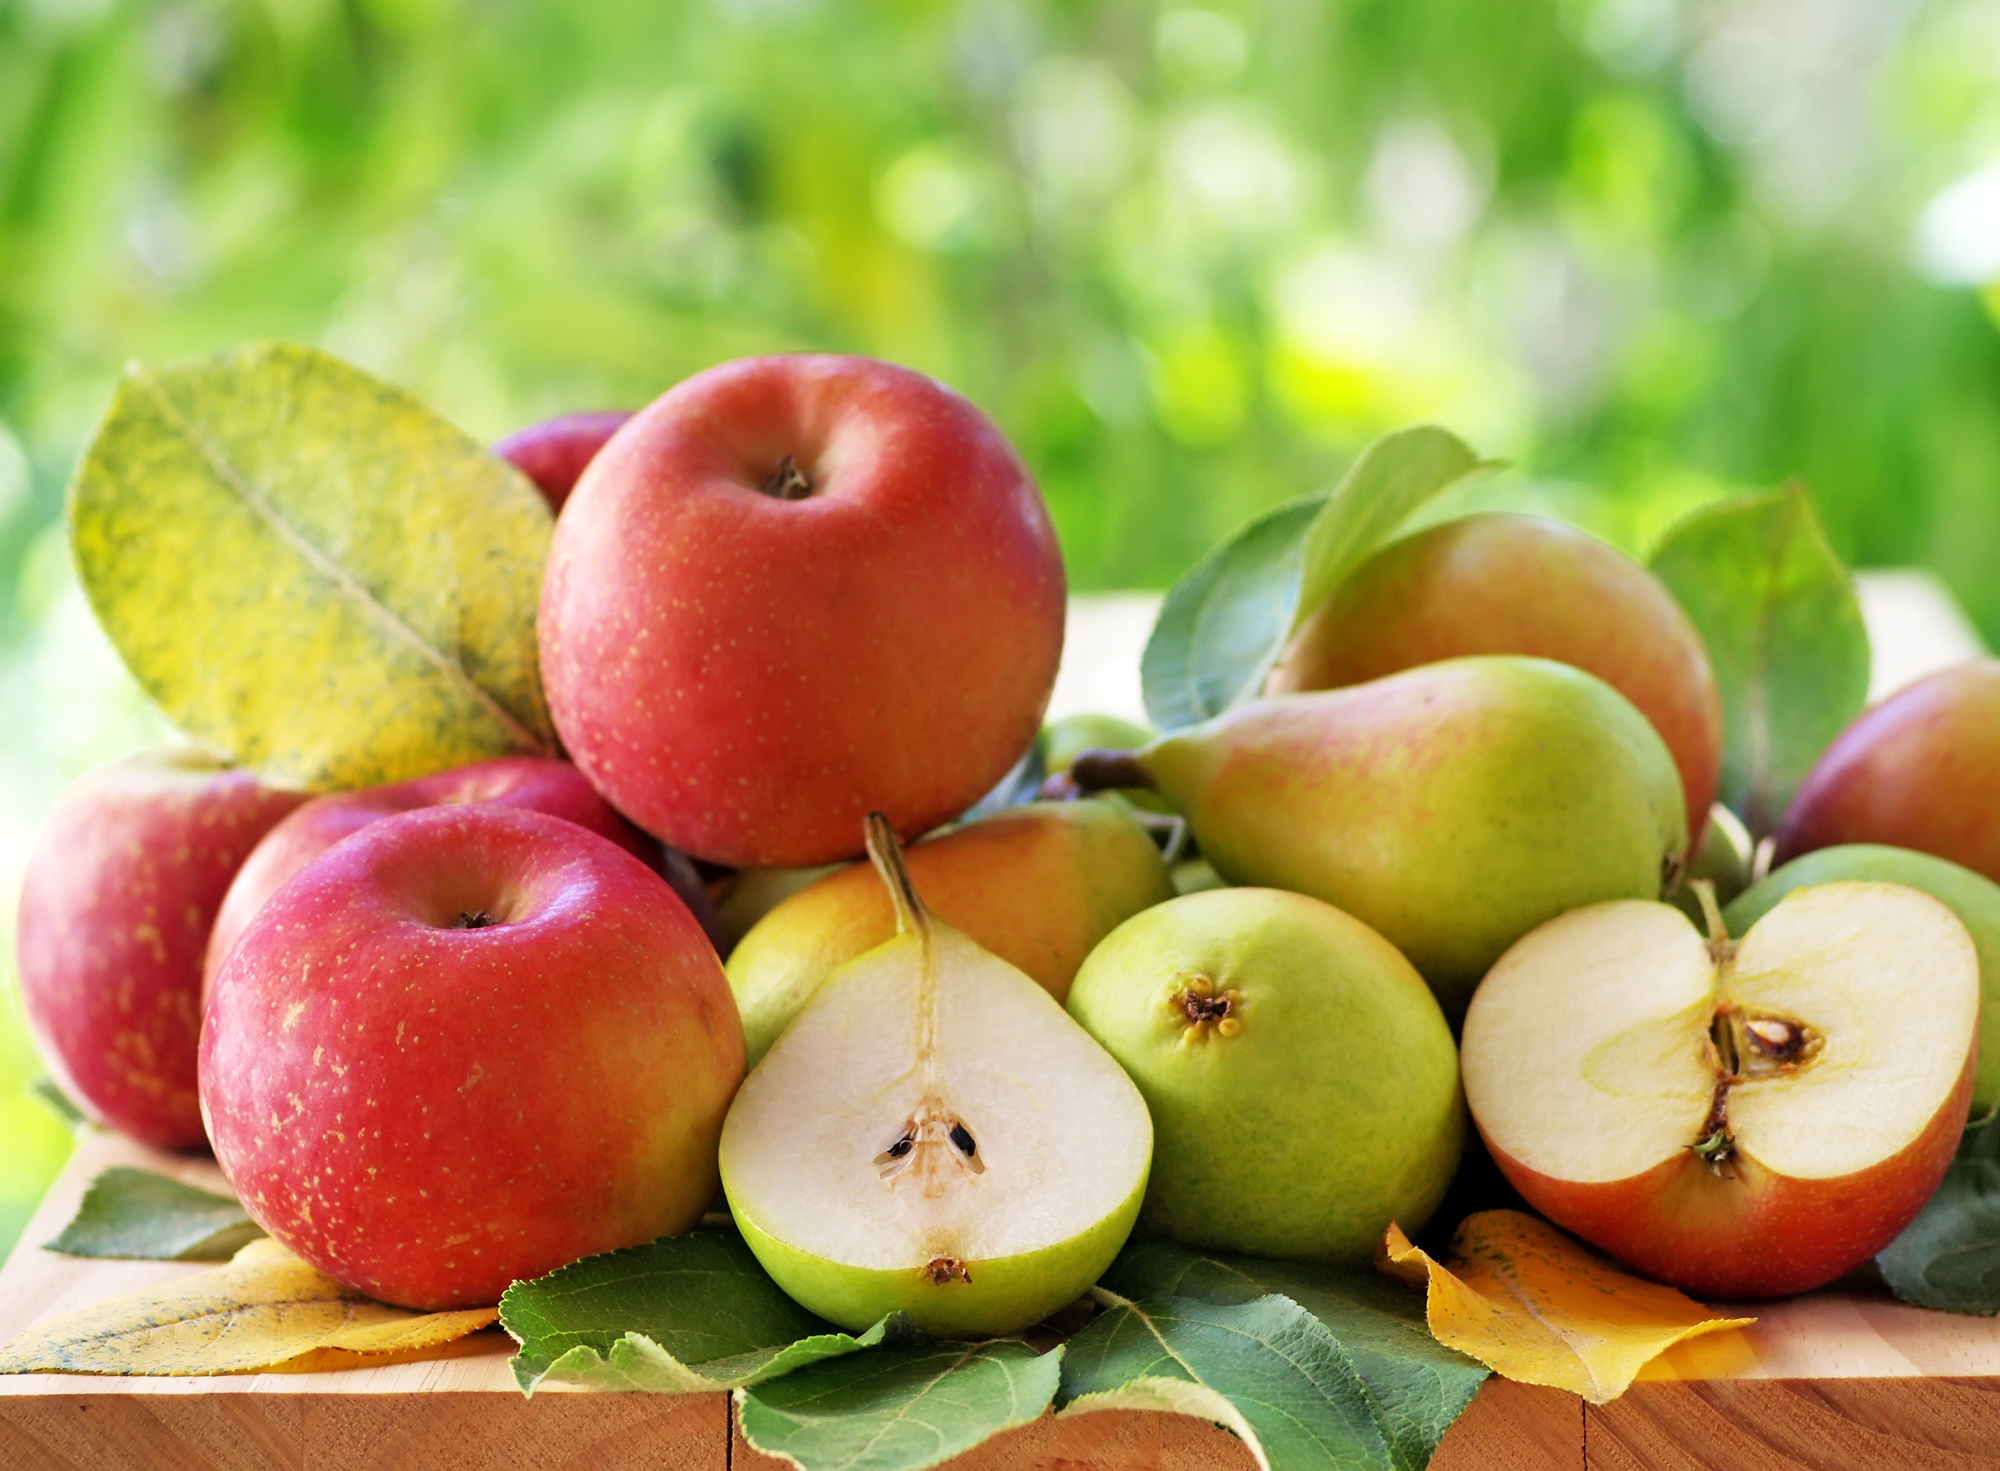 What apples and pears do to your stroke risk